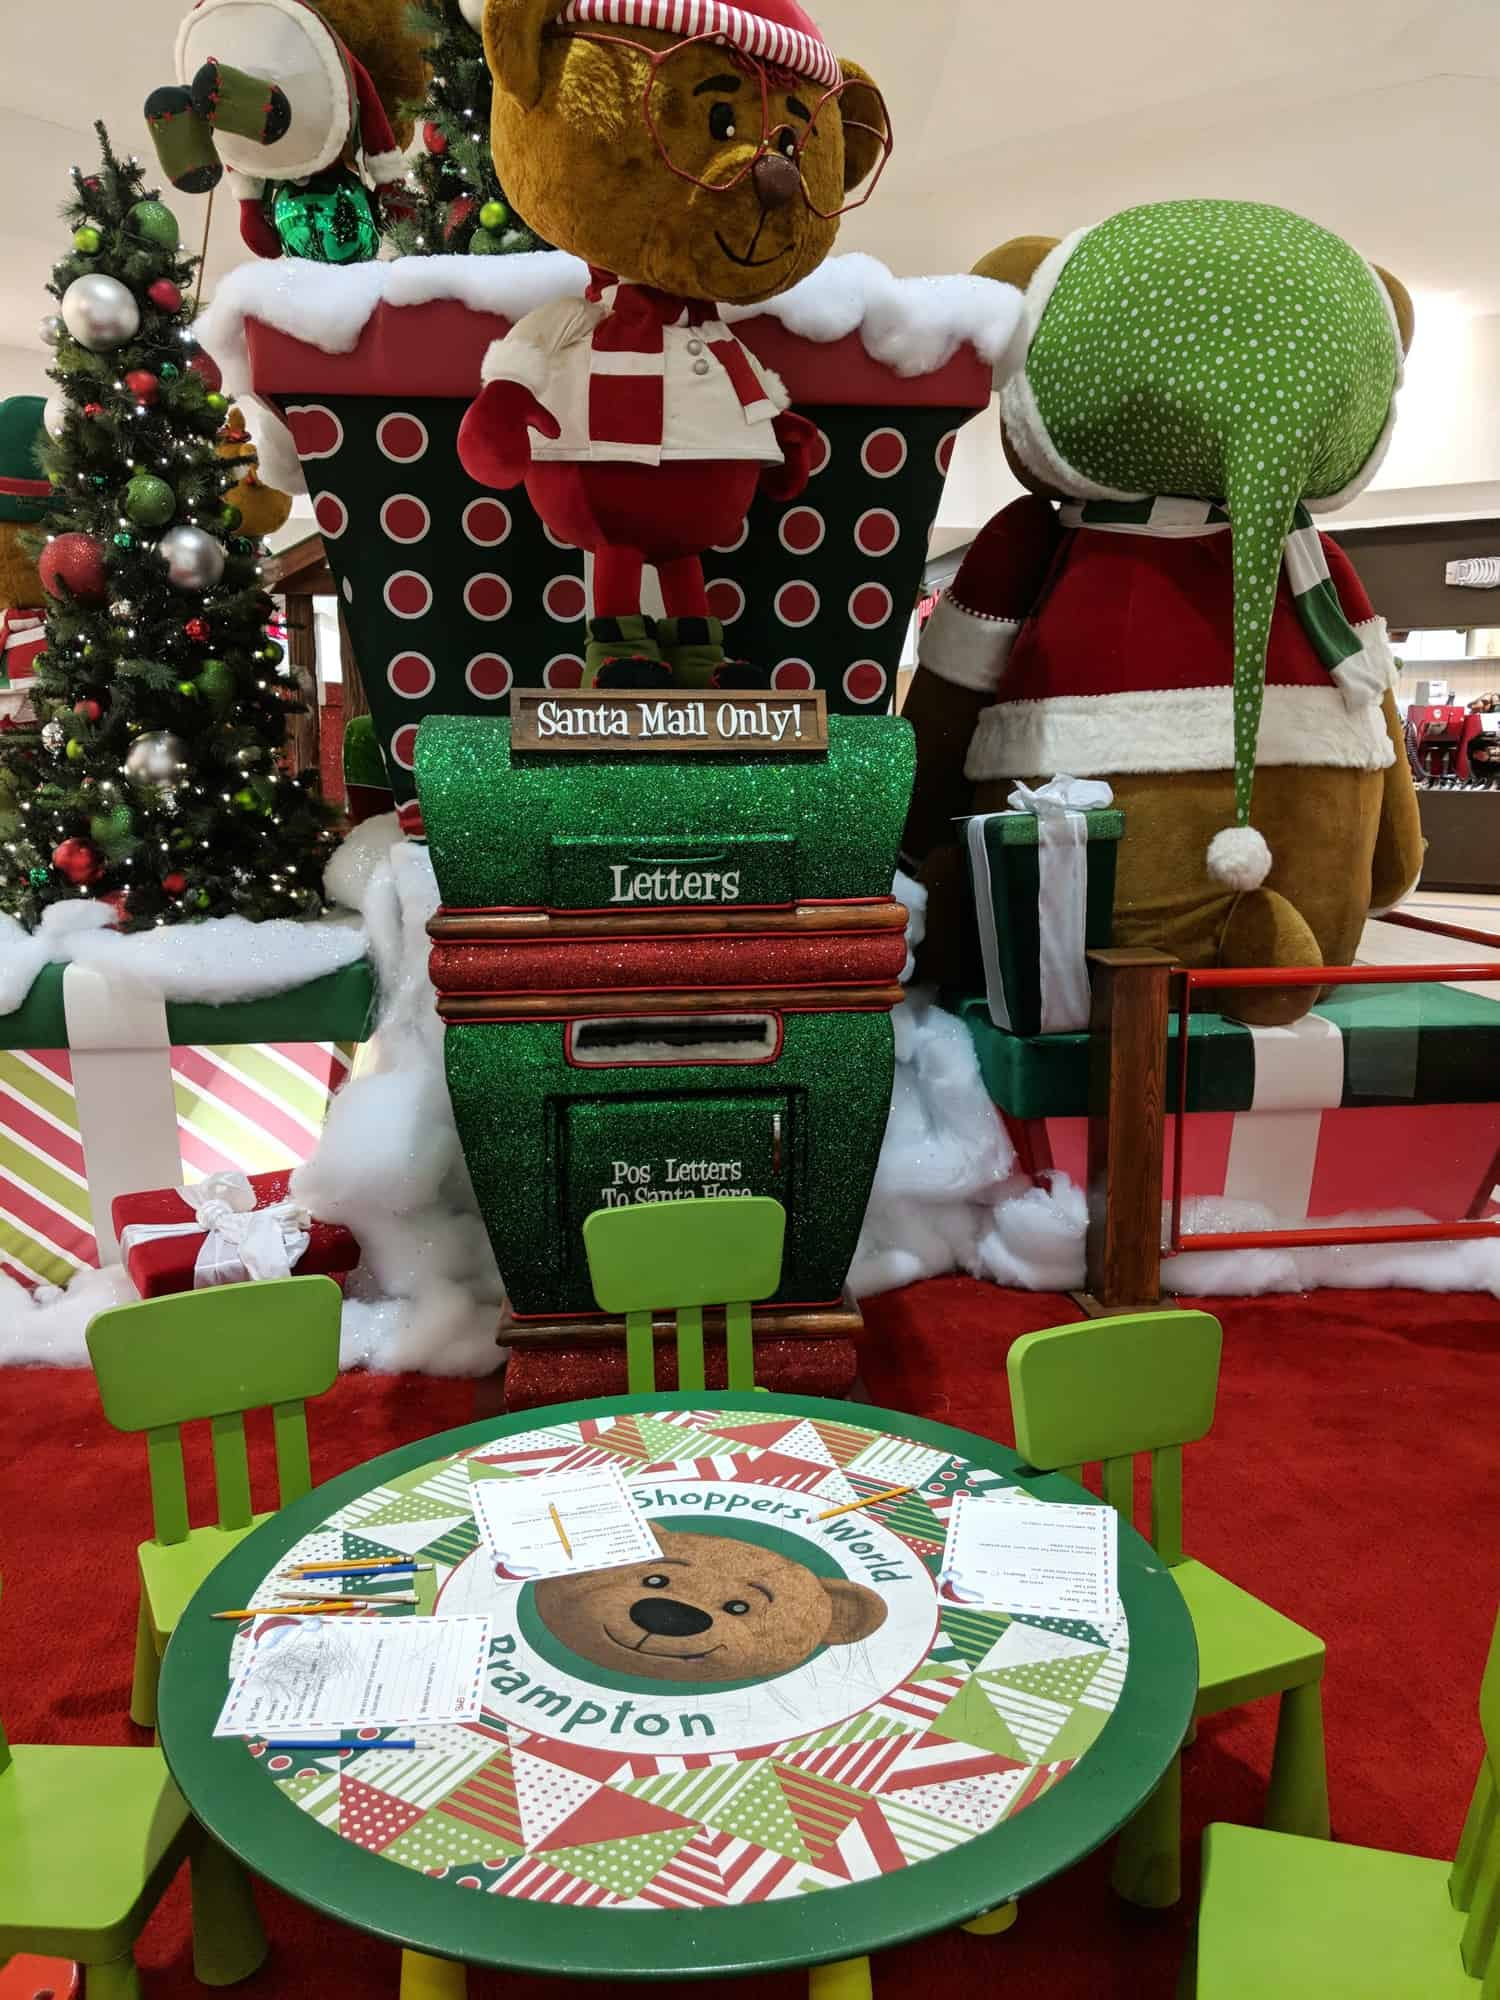 Shoppers world brampton santa pictures and letters to Santa